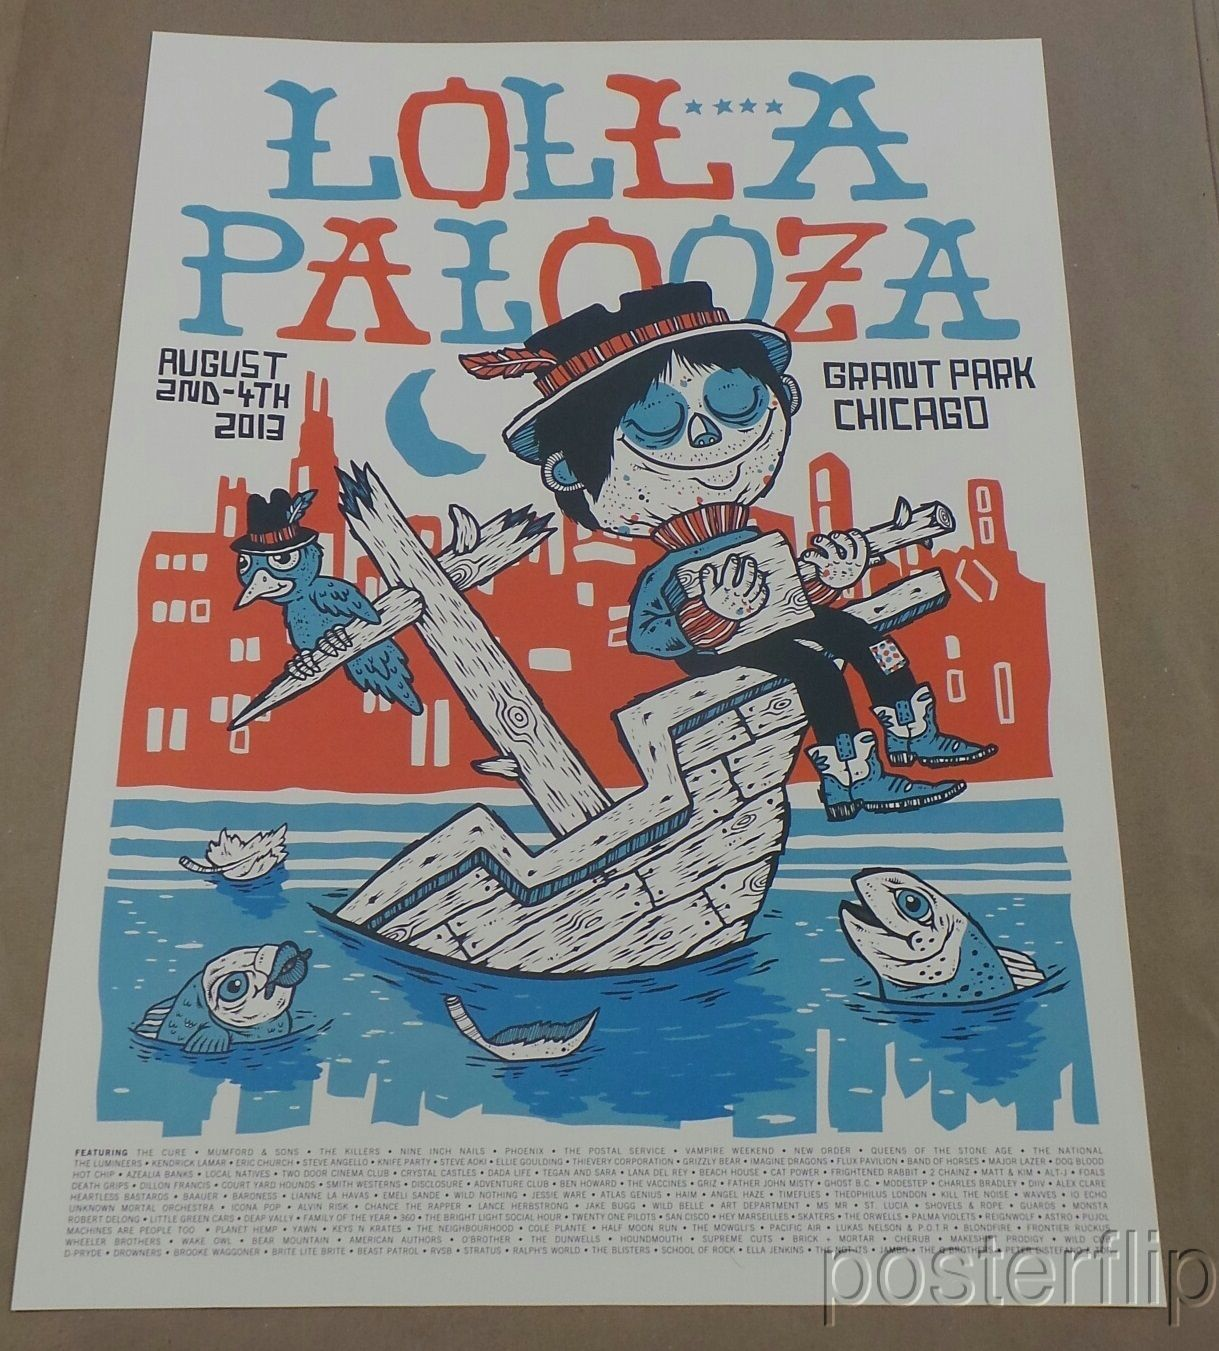 Lollapalooza Poster 2013 - Commemorative Edition